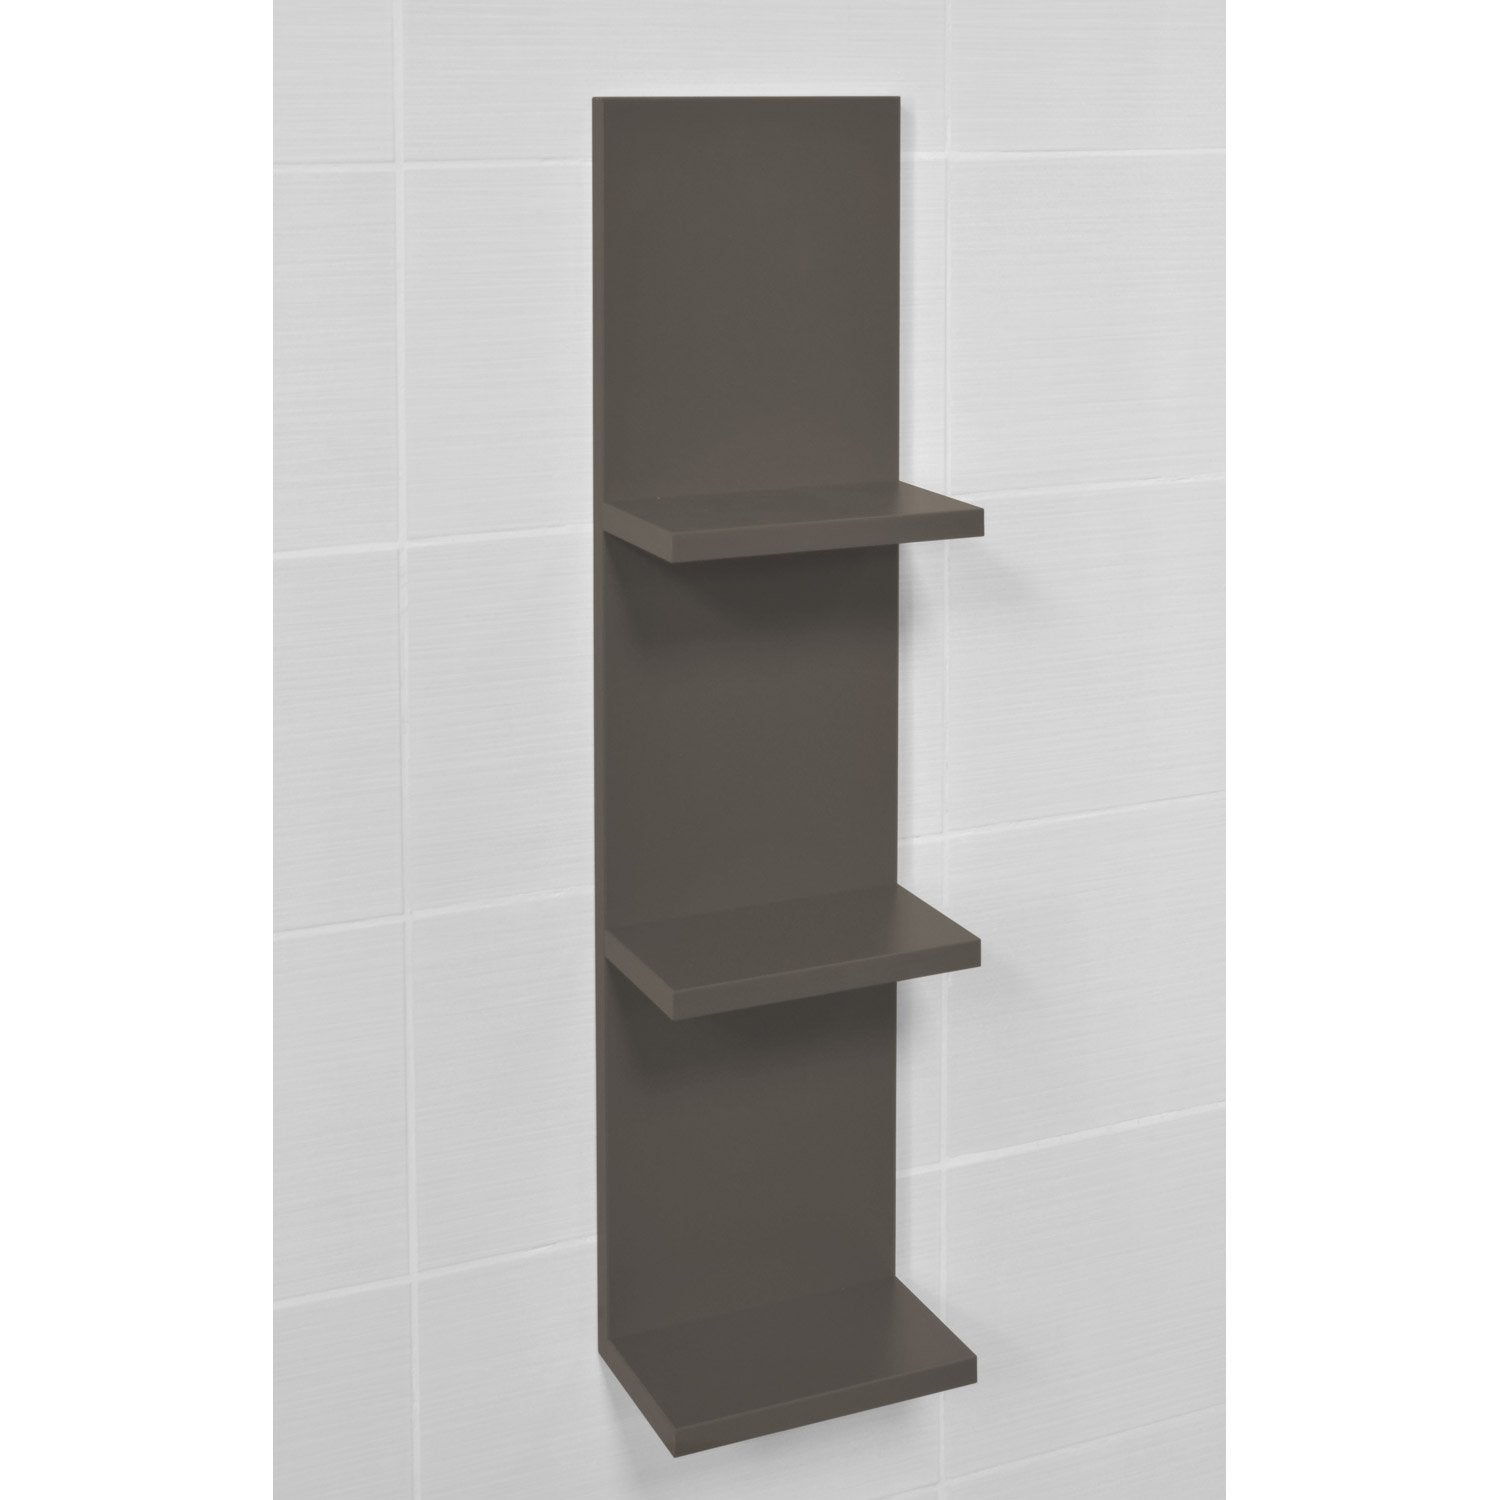 etagere murale avec tiroir leroy merlin maison design. Black Bedroom Furniture Sets. Home Design Ideas